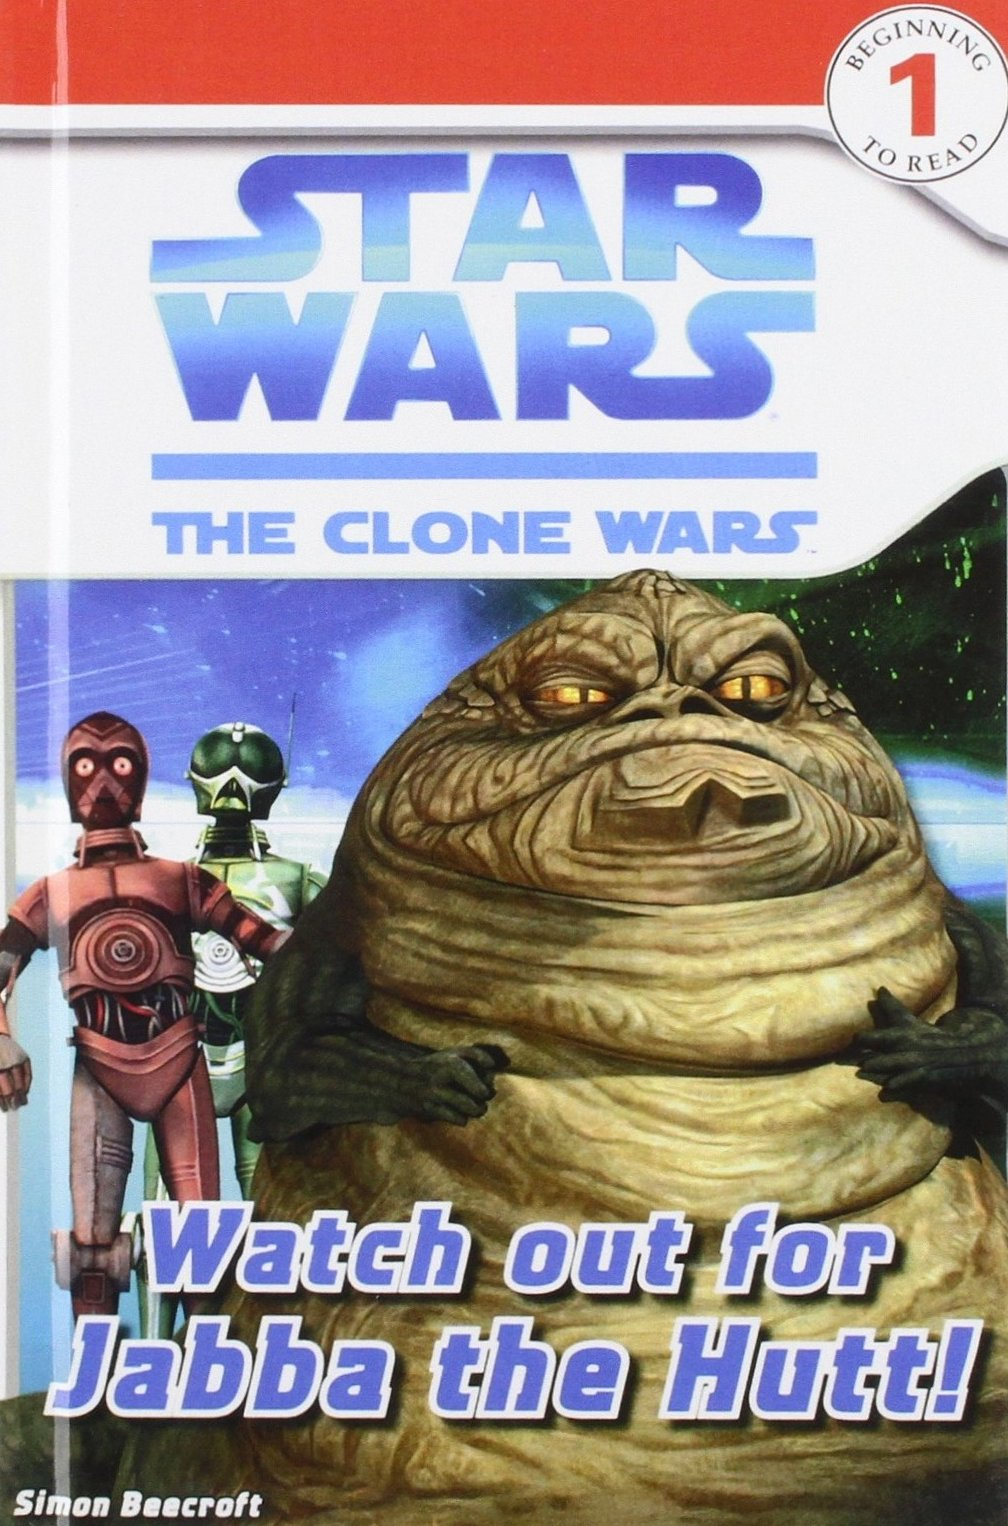 Star Wars The Clone Wars: Watch Out for Jabba the Hutt